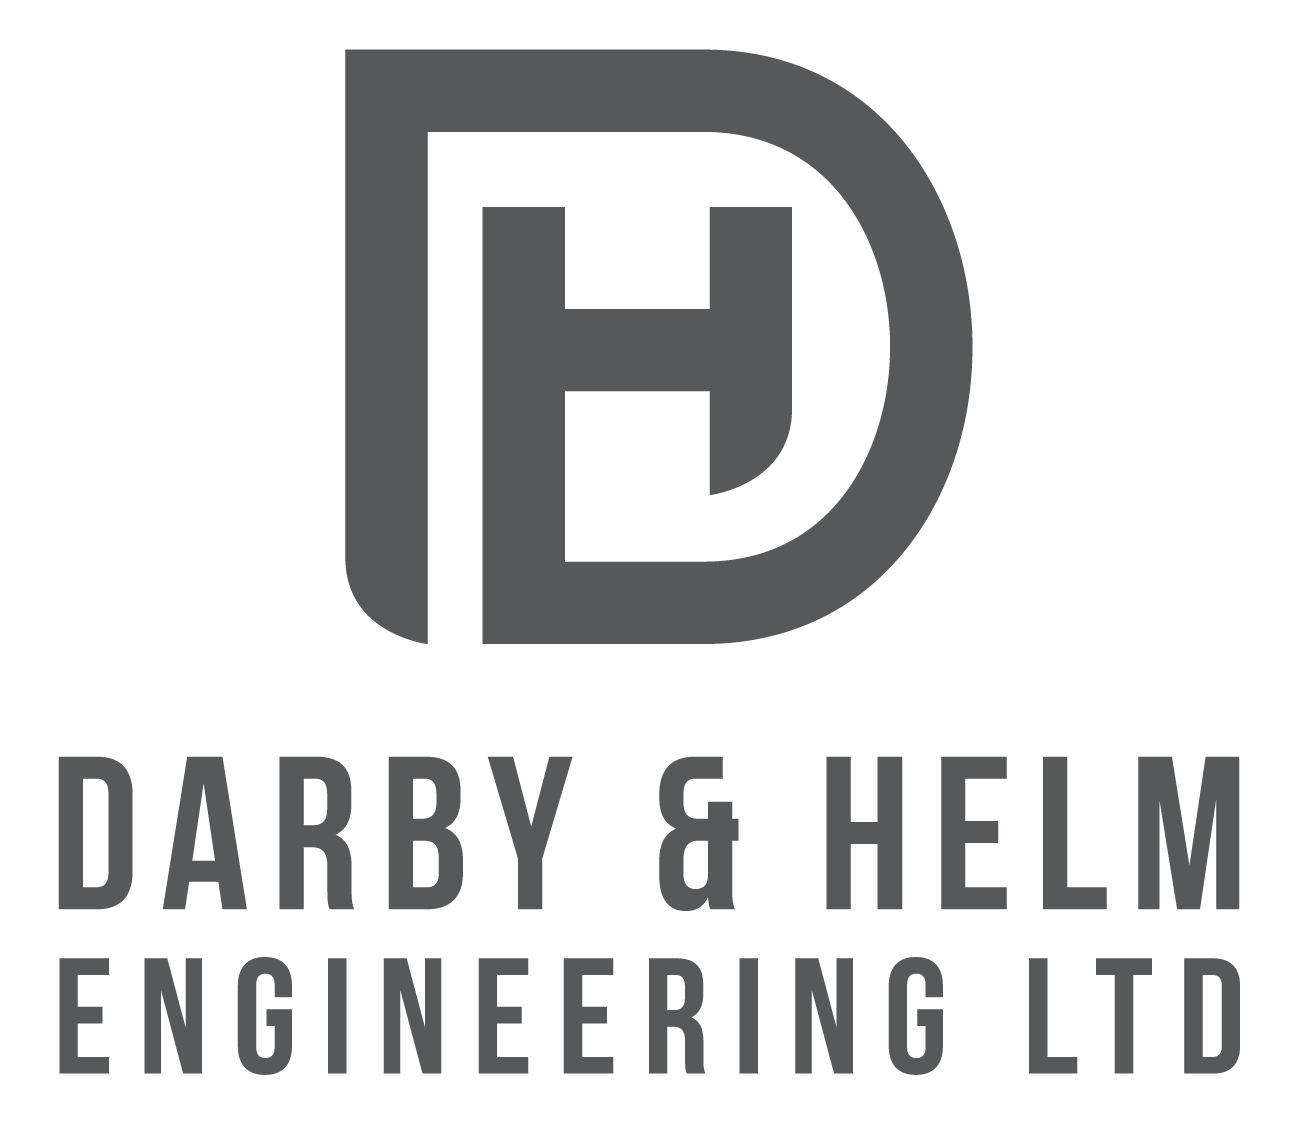 Darby & Helm Logo 2.png